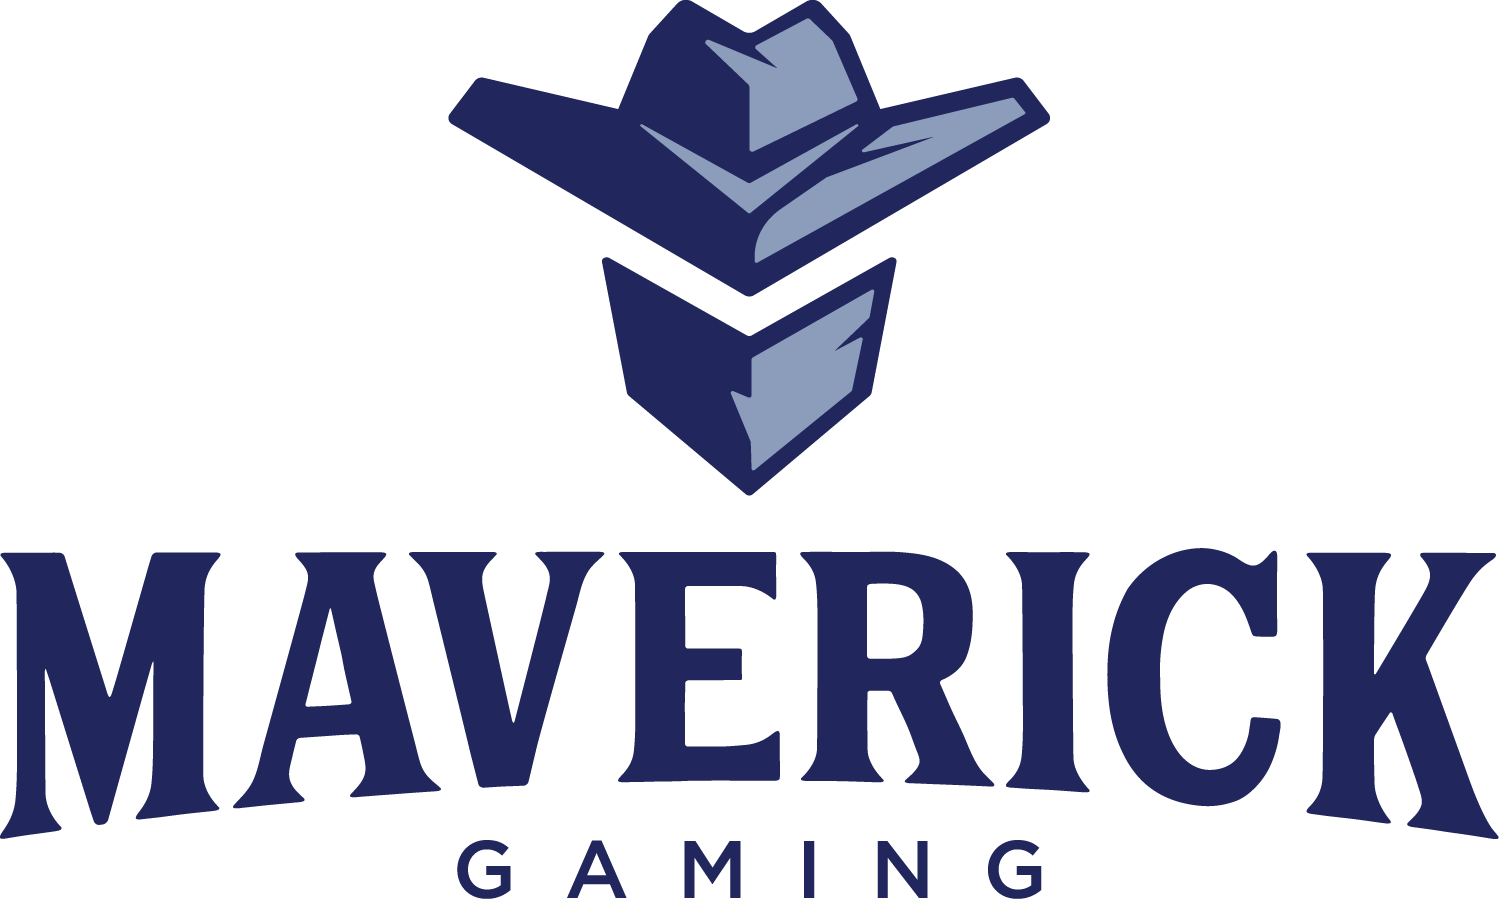 Maverick Gaming_Full logo_Colored_RGB.png